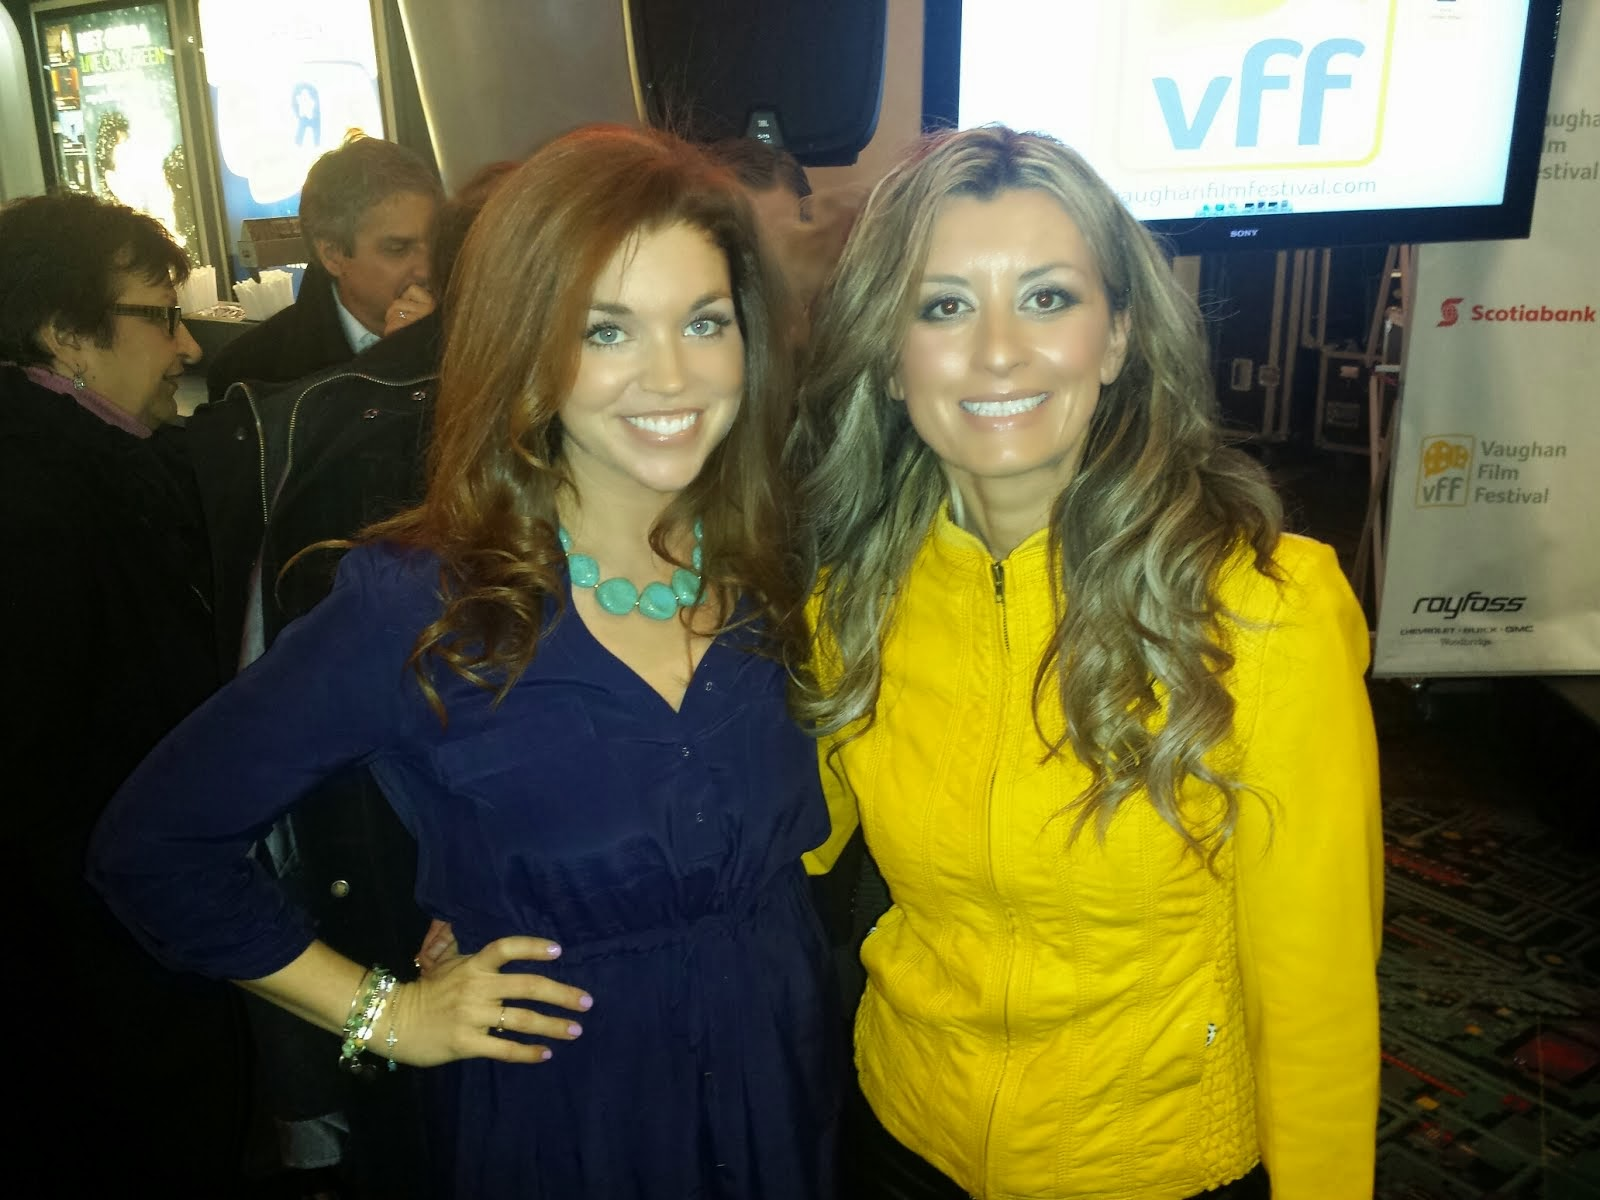 Host of VFF Media Launch, Michelle Beilhartz